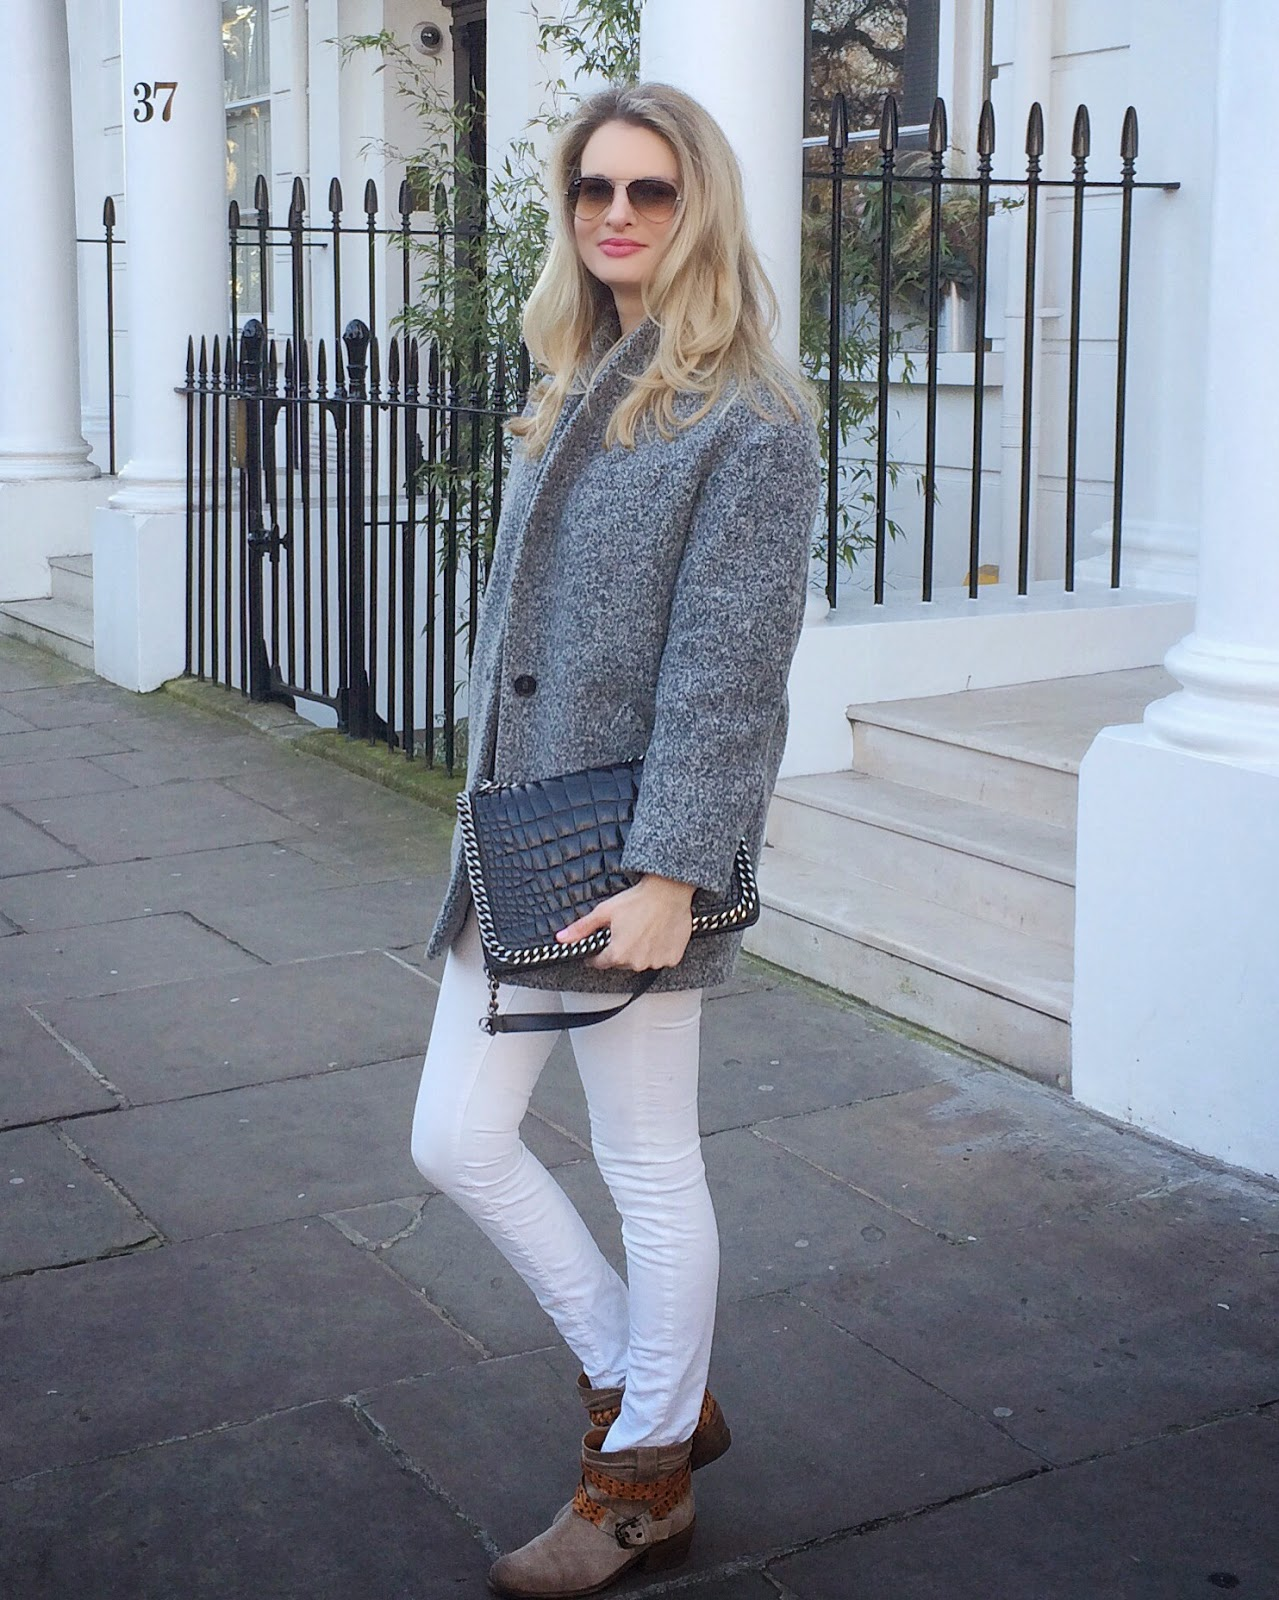 london street style, white skinny jeans, grey coat, iro coat, white jeans and grey coat, beige boots, russell and bromley boots, blonde hair, blonde wavy hair, ray ban sunglasses, zara croco bag, zara city bag croco